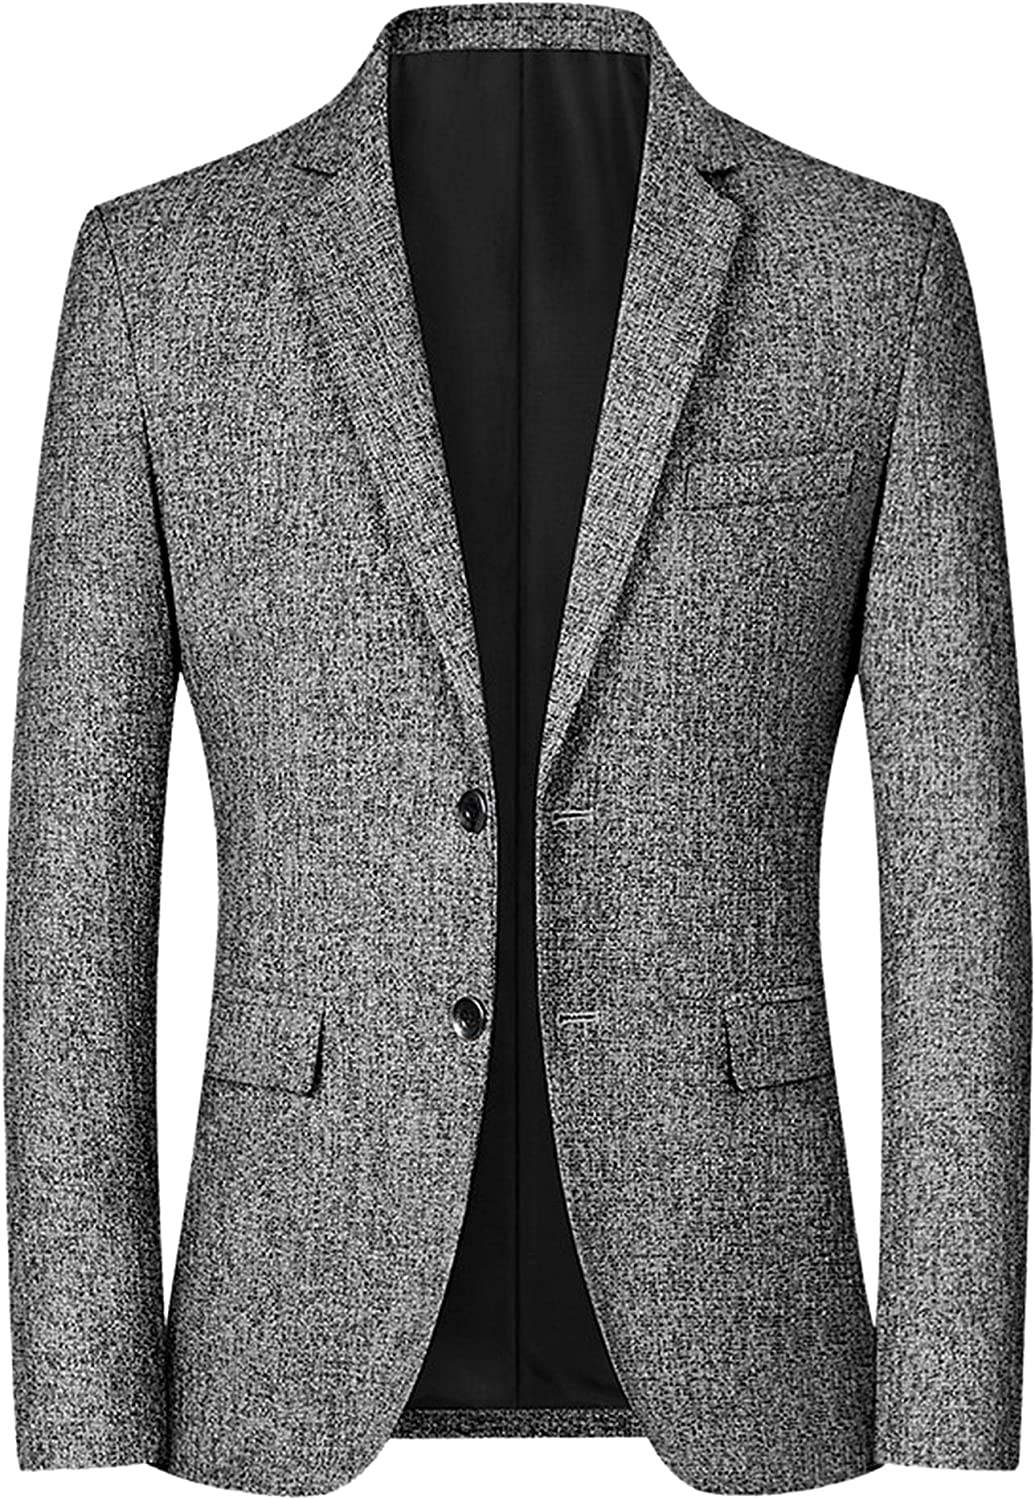 Lars Amadeus Men's Business Blazer Single Breasted Two Buttons Formal Suit Sports Coat